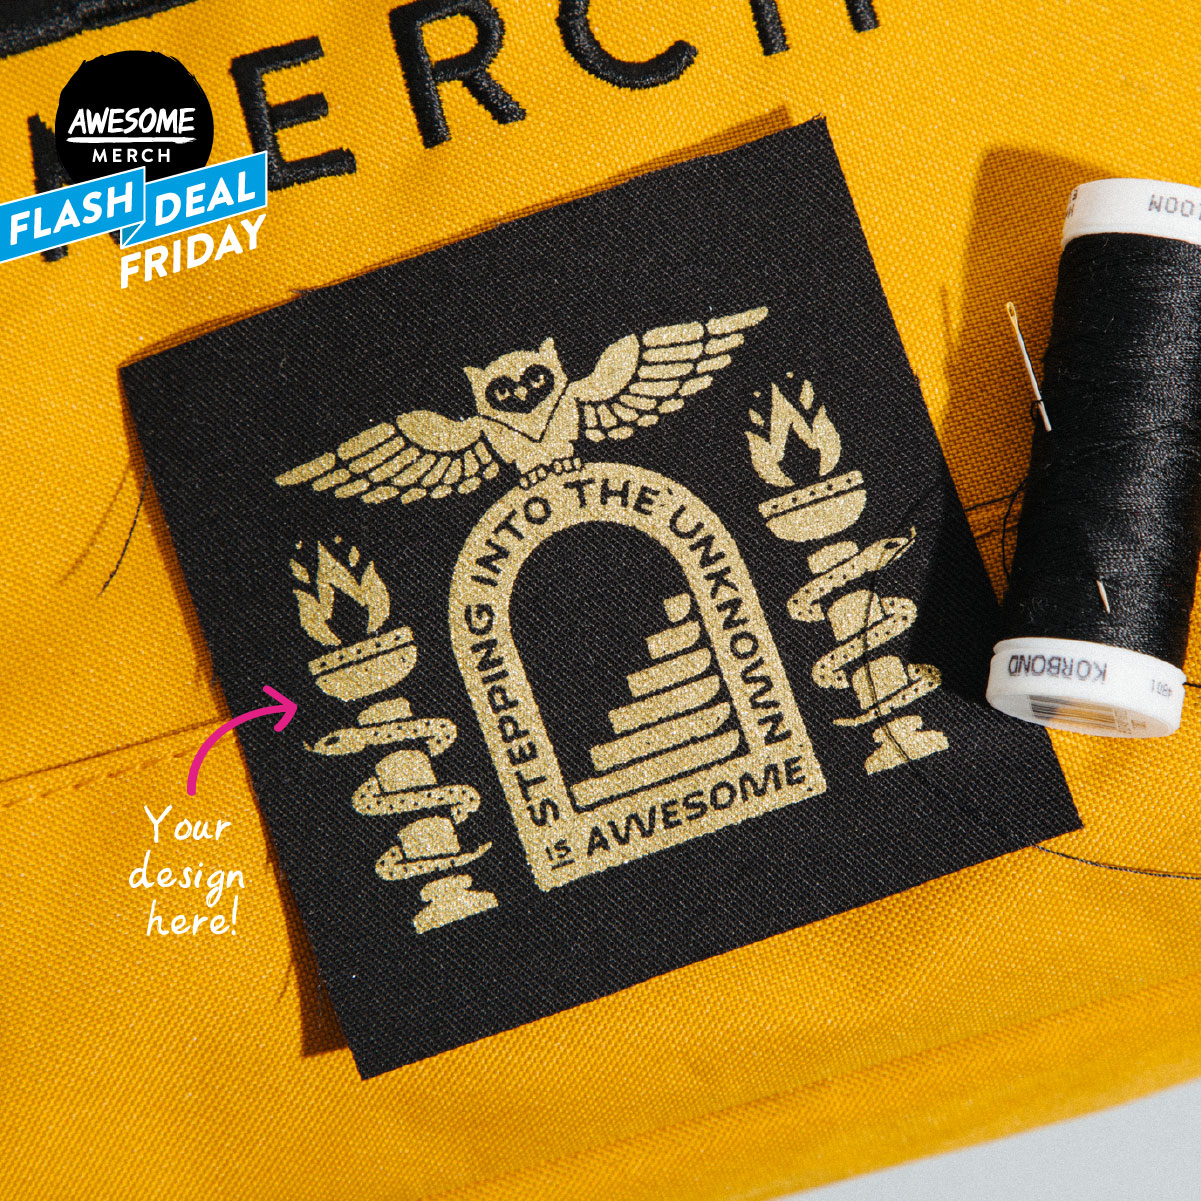 100 x Screen Printed Patches for £40 - Flash Deal